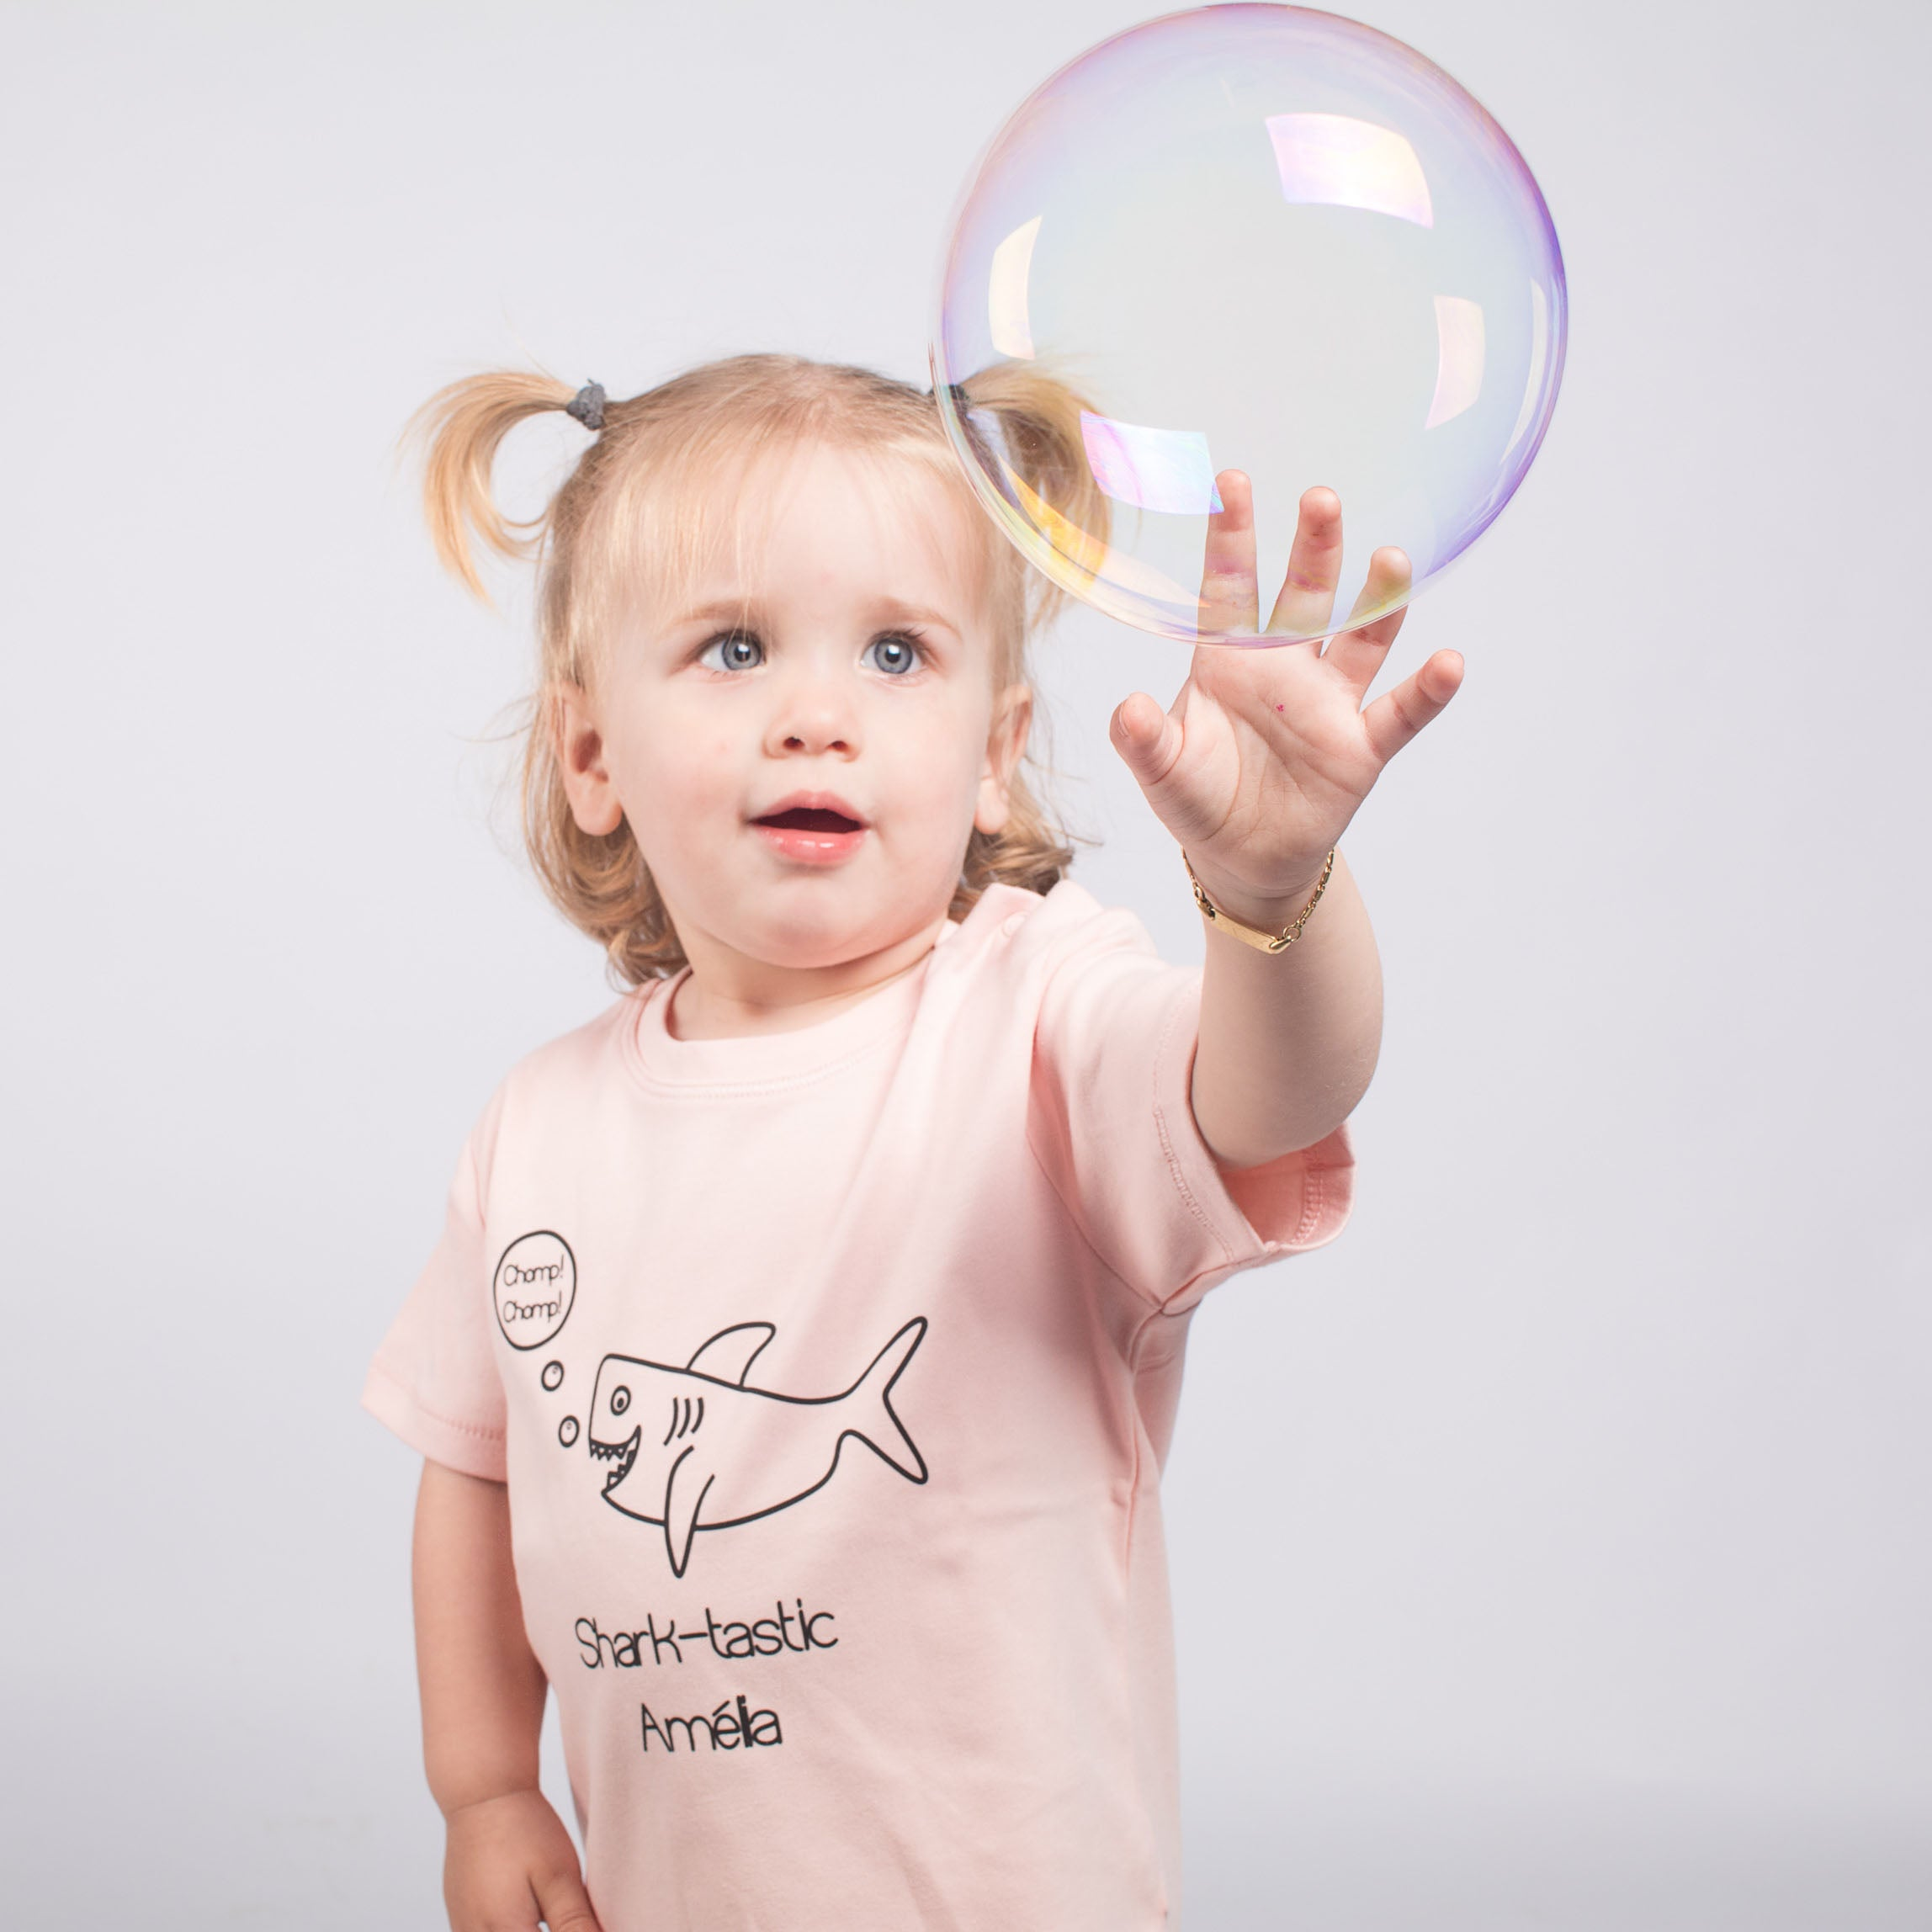 Sharktastic baby shortsleeve shirt